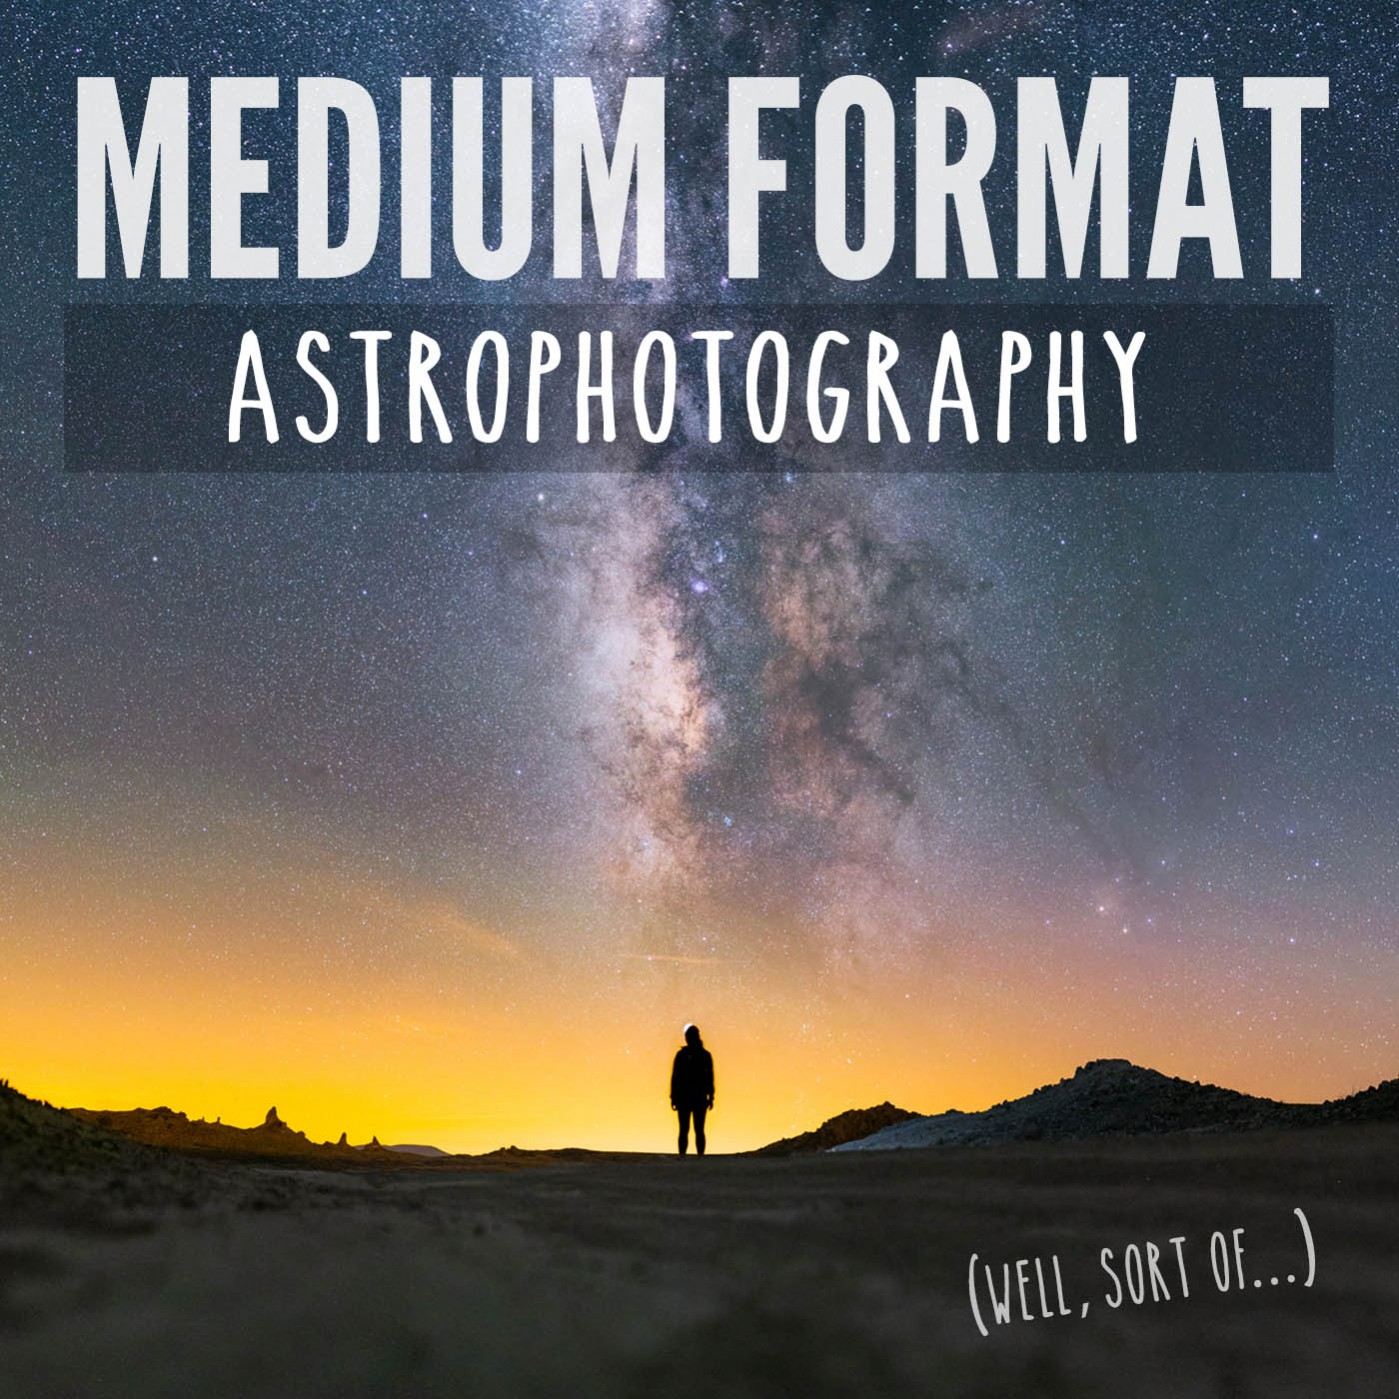 medium-format-astrophotography-title